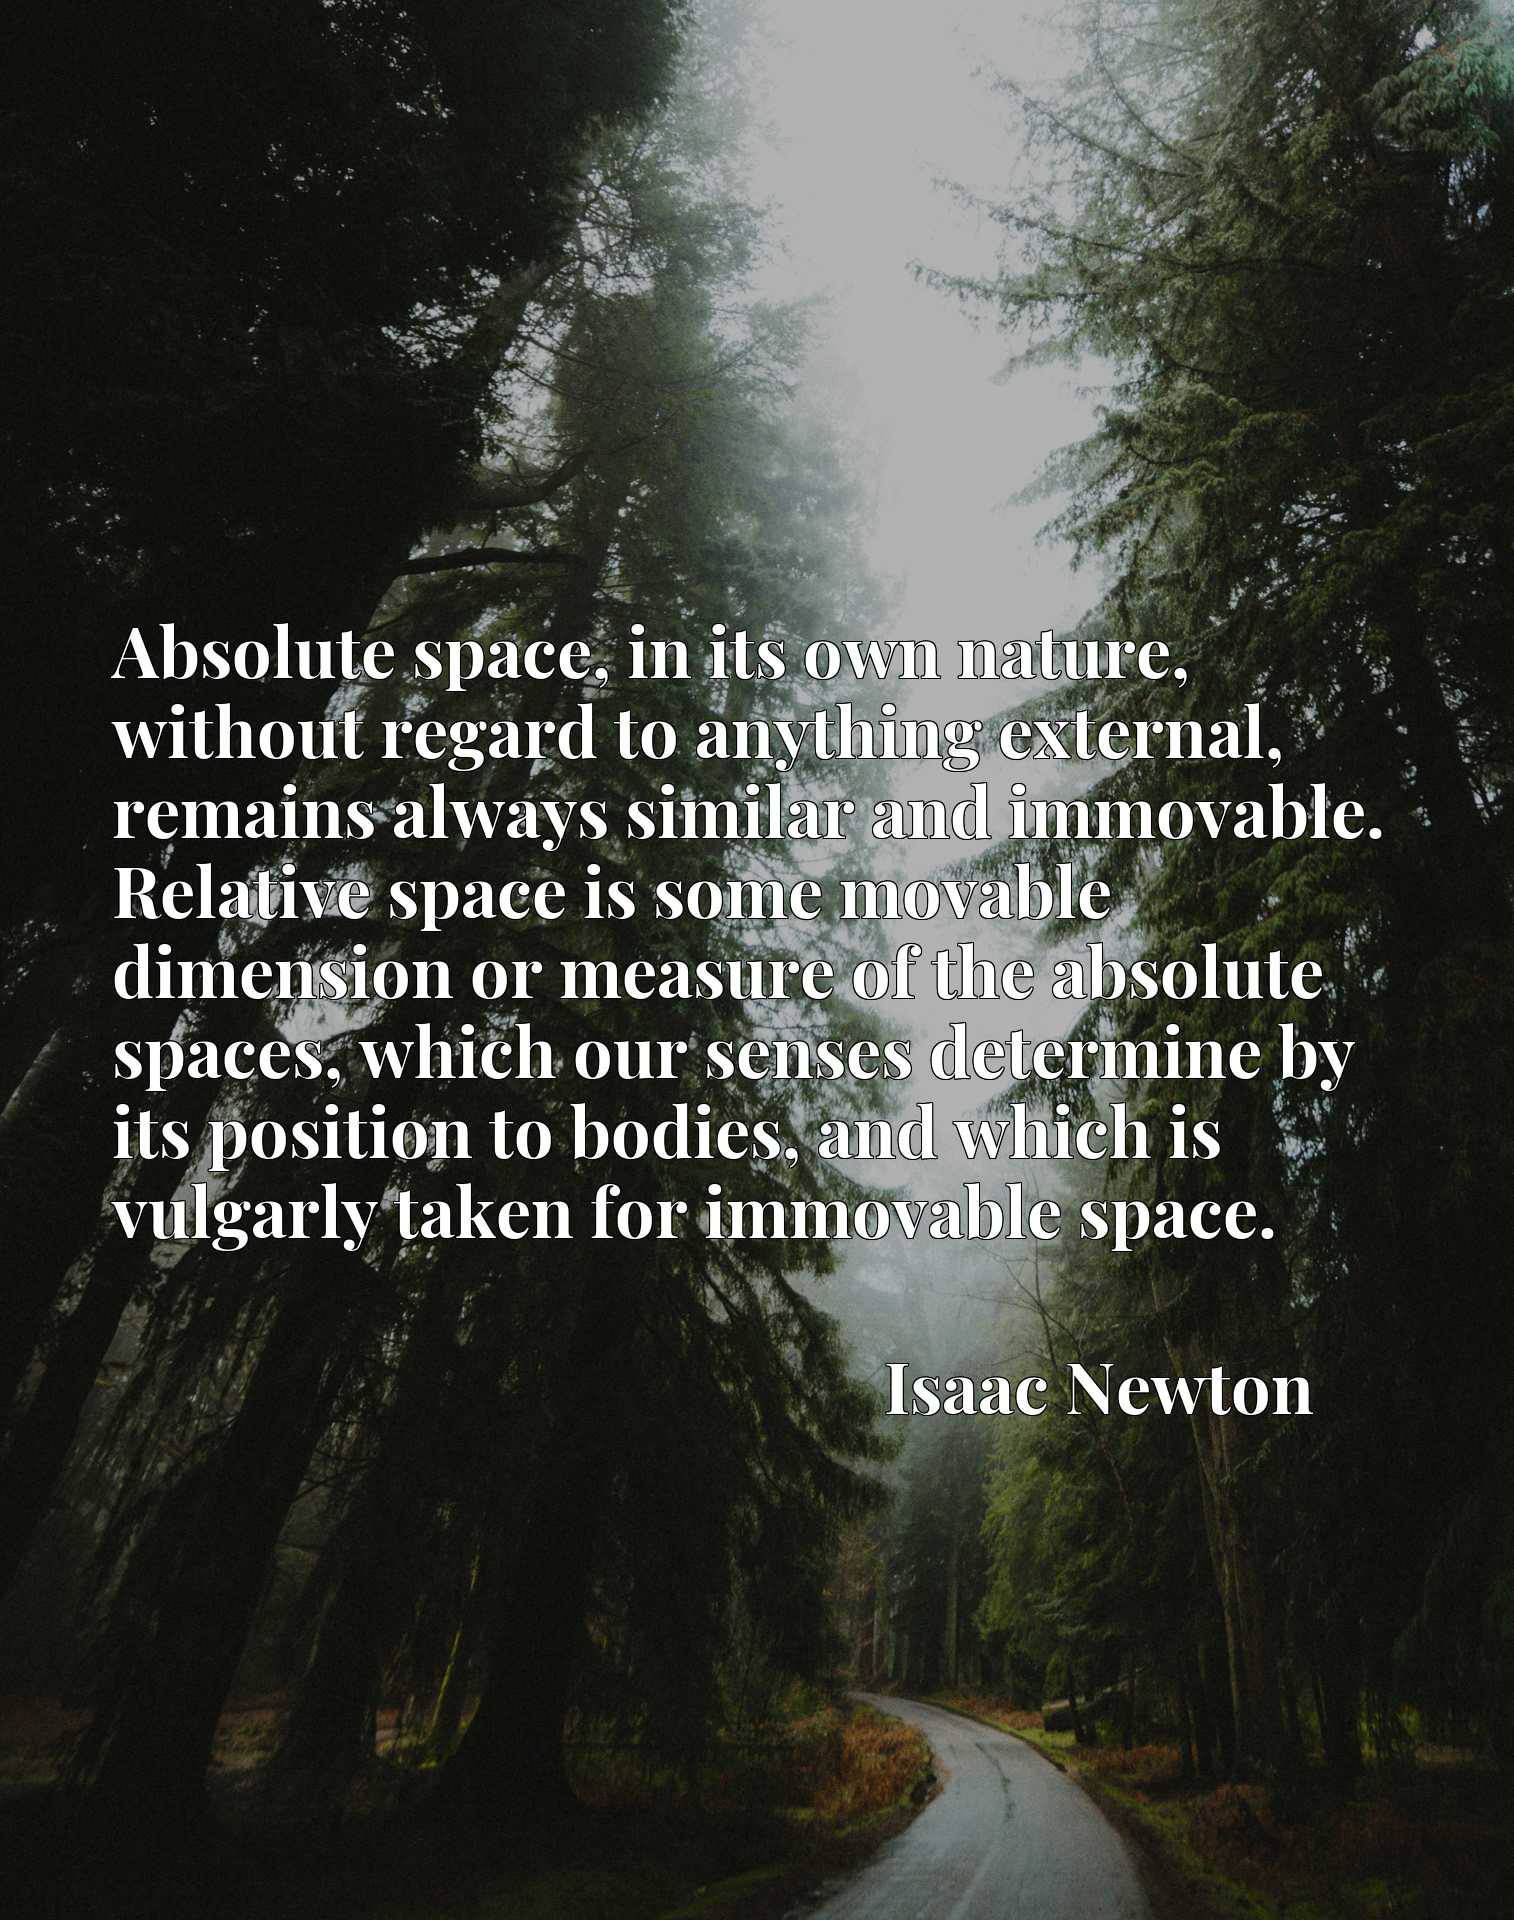 Absolute space, in its own nature, without regard to anything external, remains always similar and immovable. Relative space is some movable dimension or measure of the absolute spaces, which our senses determine by its position to bodies, and which is vulgarly taken for immovable space.